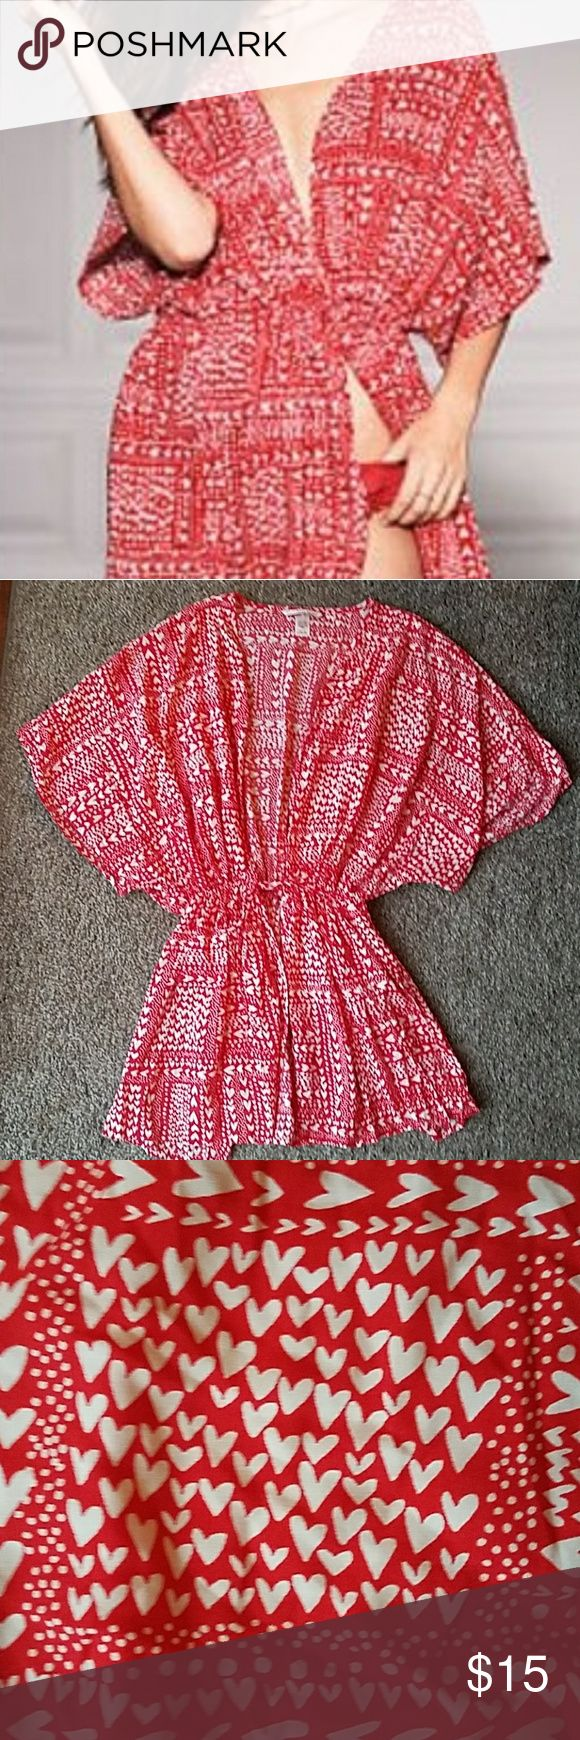 VS Red White Heart Swim Cover Up Excellent Condition ~ No Noted Flaws, Tears, Stains ~ Smoke Free  Red With White Hearts ~ One Size ~ Kimona Sleeve ~ Elastic Waist ~ Tie Front ~ Short Length Victoria's Secret Swim Coverups